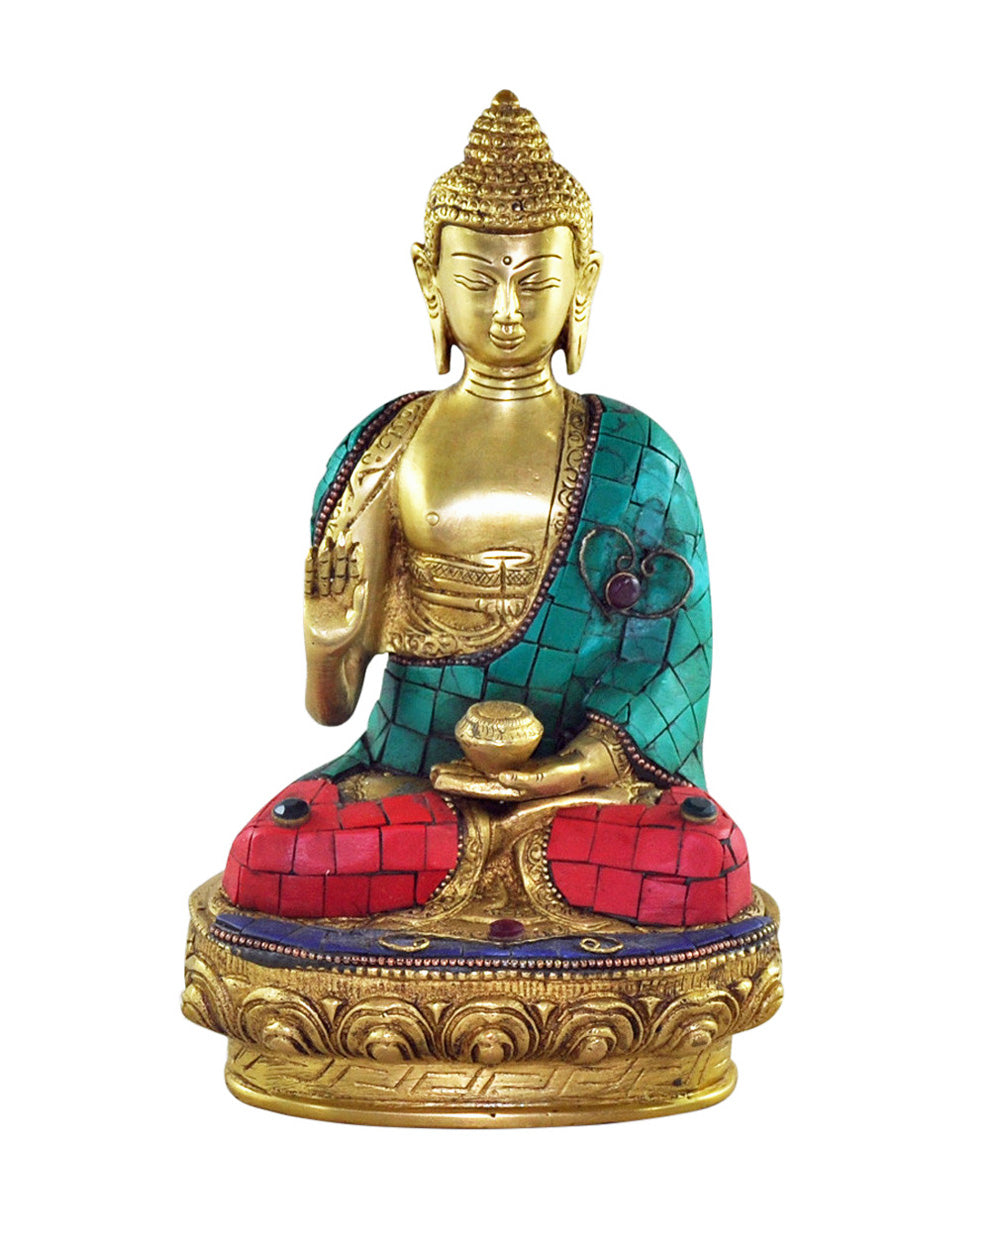 Medicine Buddha Statue with Turquoise & Coral Mosaic Detailing